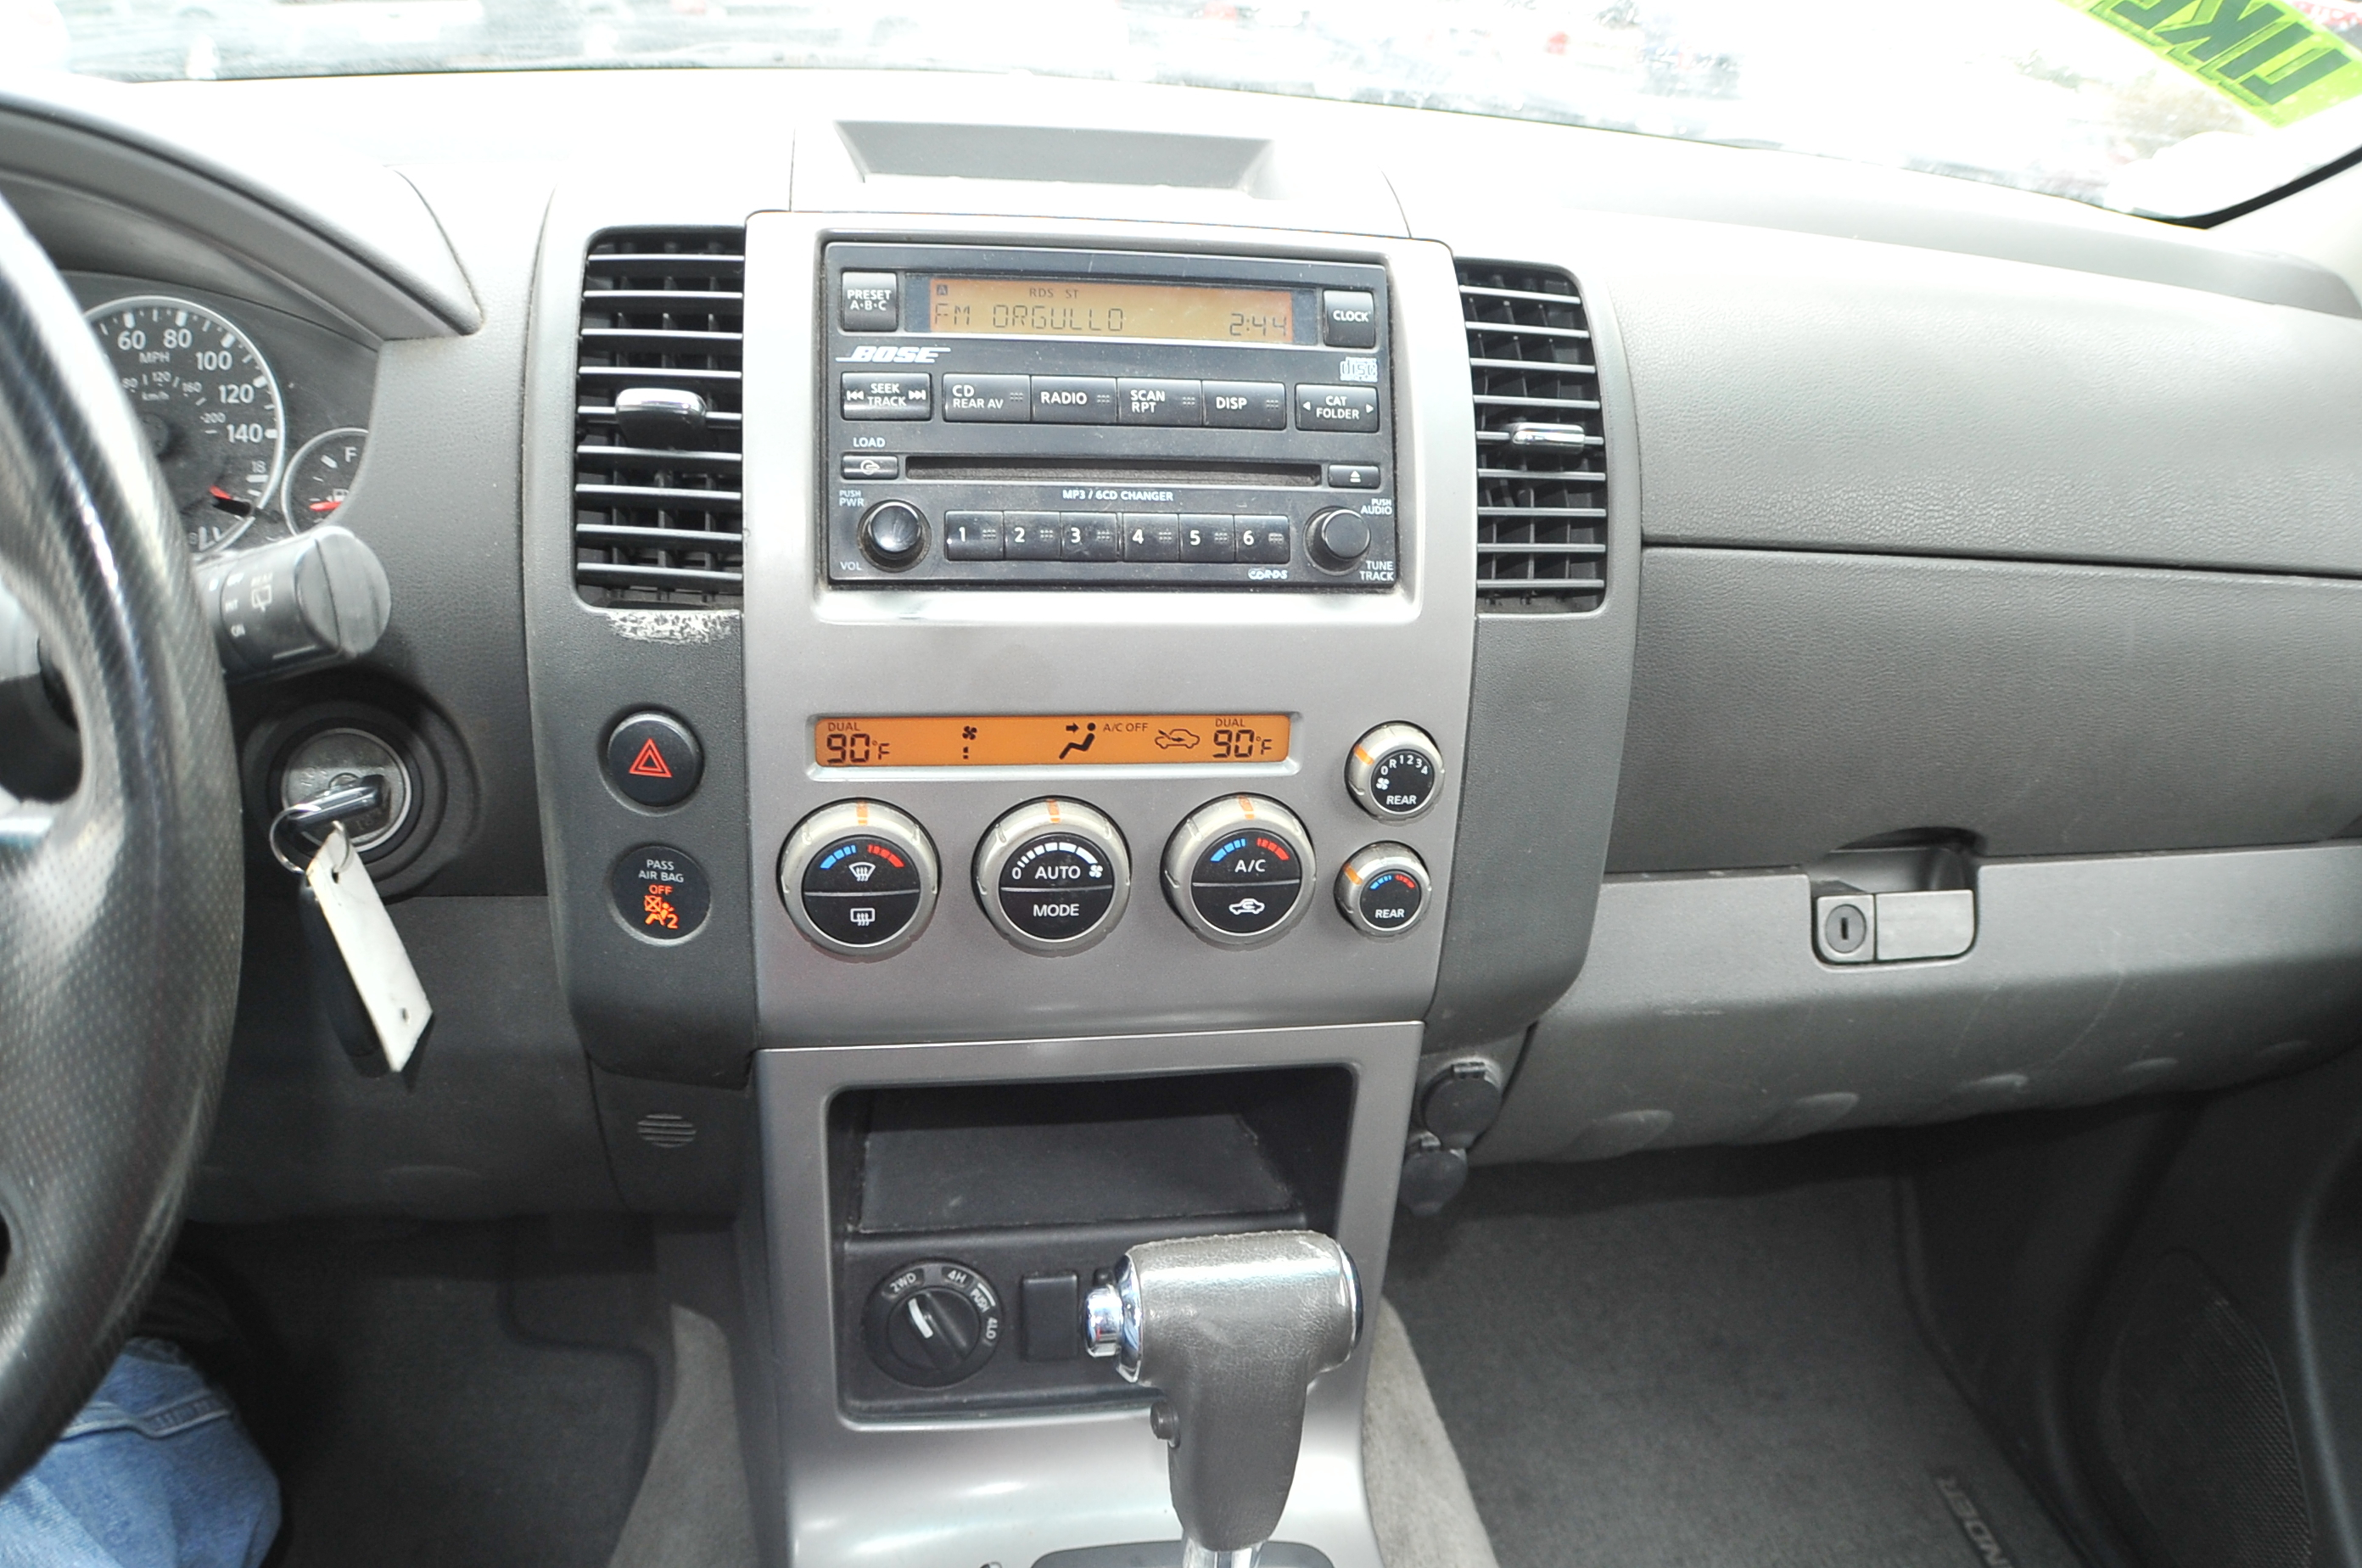 2005 Nissan Pathfinder SE Silver Used SUV 4x4 Sale Libertyville Lincolnshire Lindenhurst